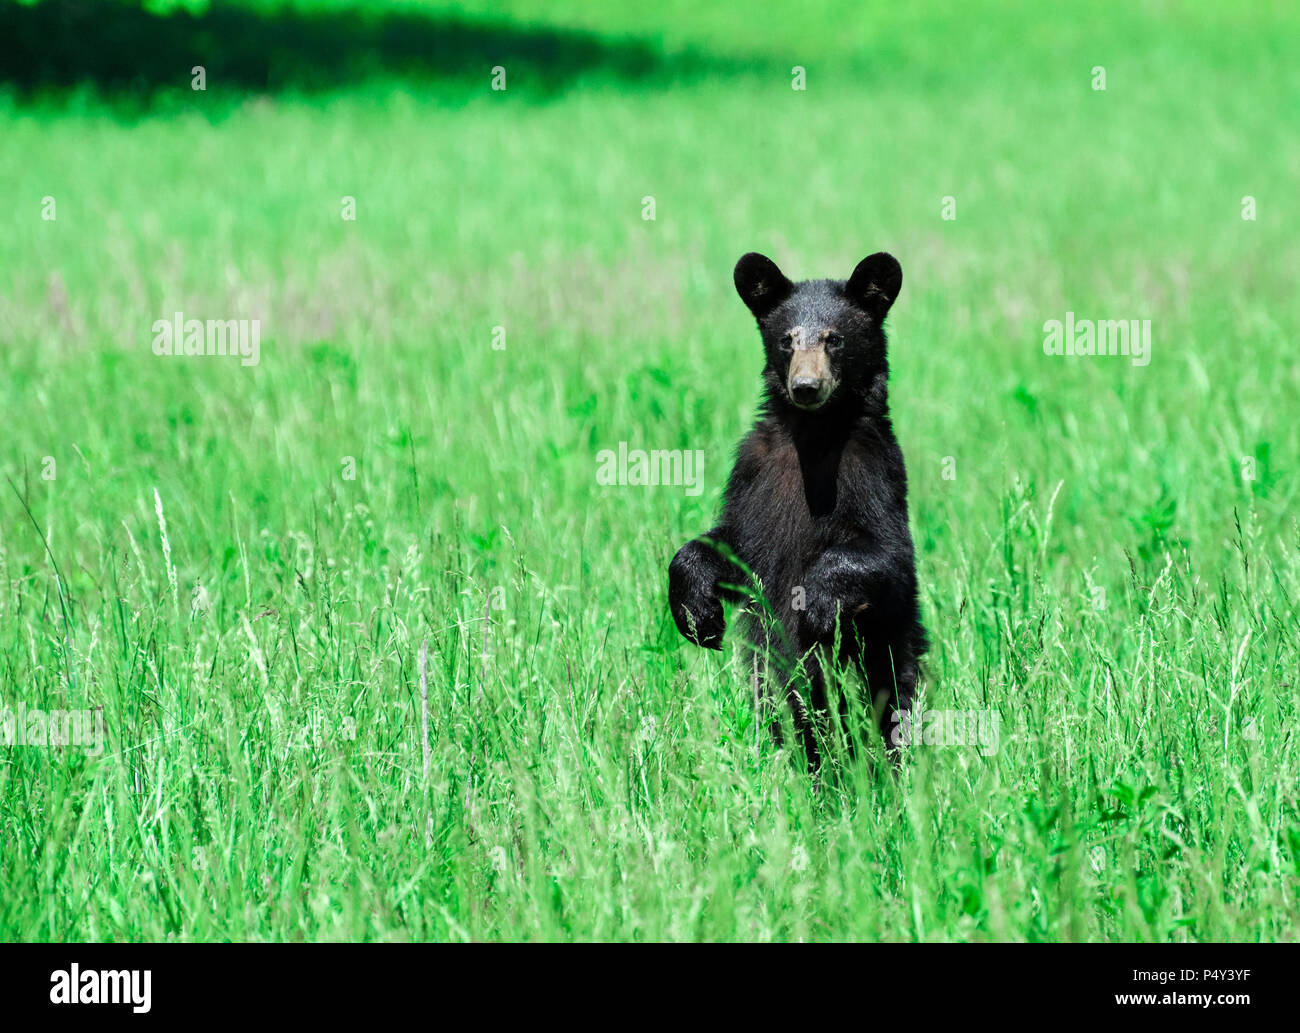 Horizontal shot of a North American Black Bear standing in a green field looking toward the camera. - Stock Image